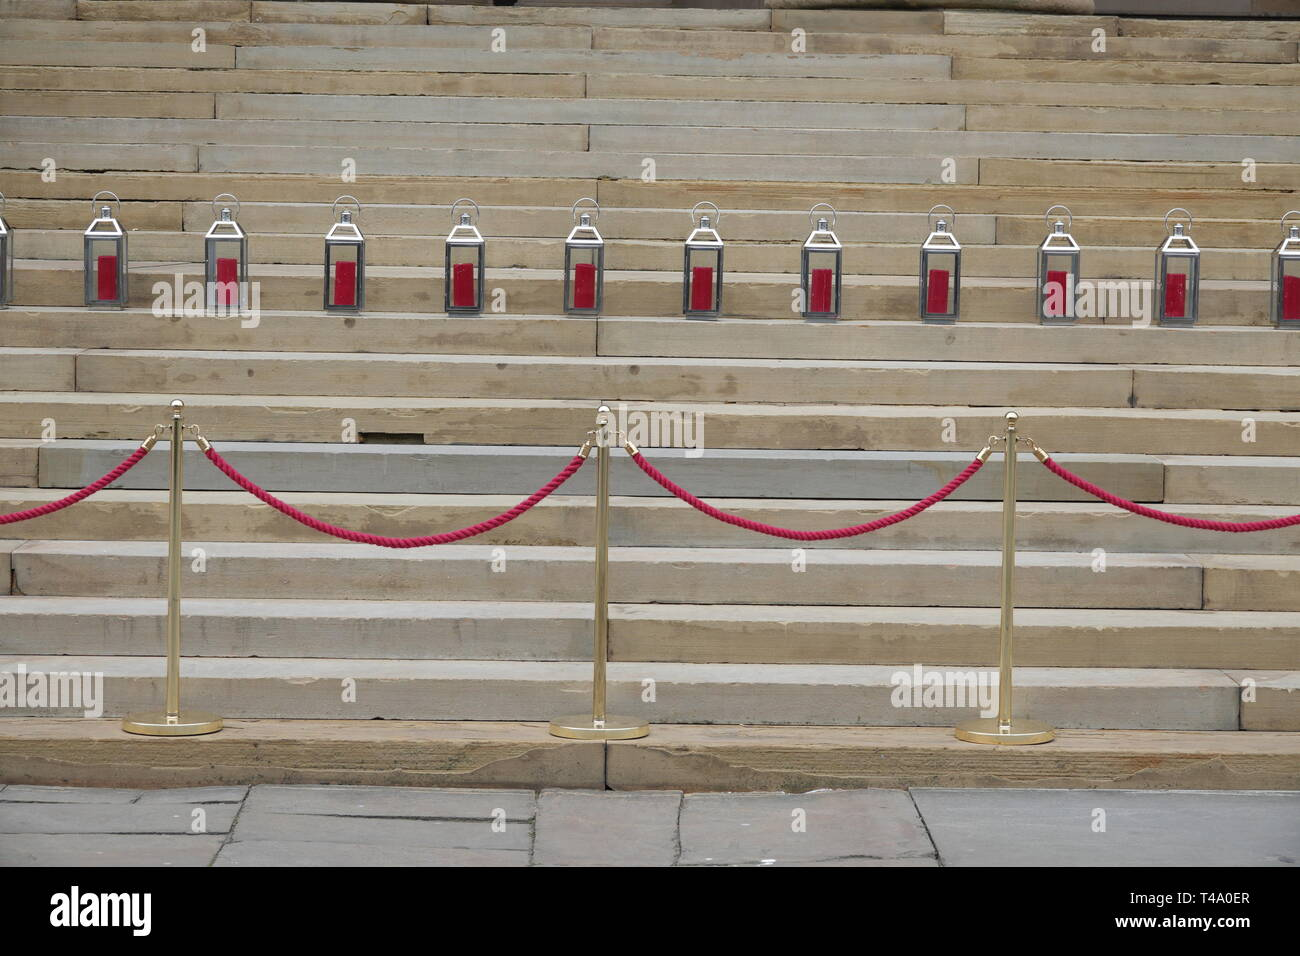 Liverpool, UK. 15th Apr, 2019. 96 candles on the steps of St George's Hall to mark the 30th anniversary of the Hillsborough disaster in which 96 Liverpool supporters lost their lives. Credit: ken biggs/Alamy Live News - Stock Image